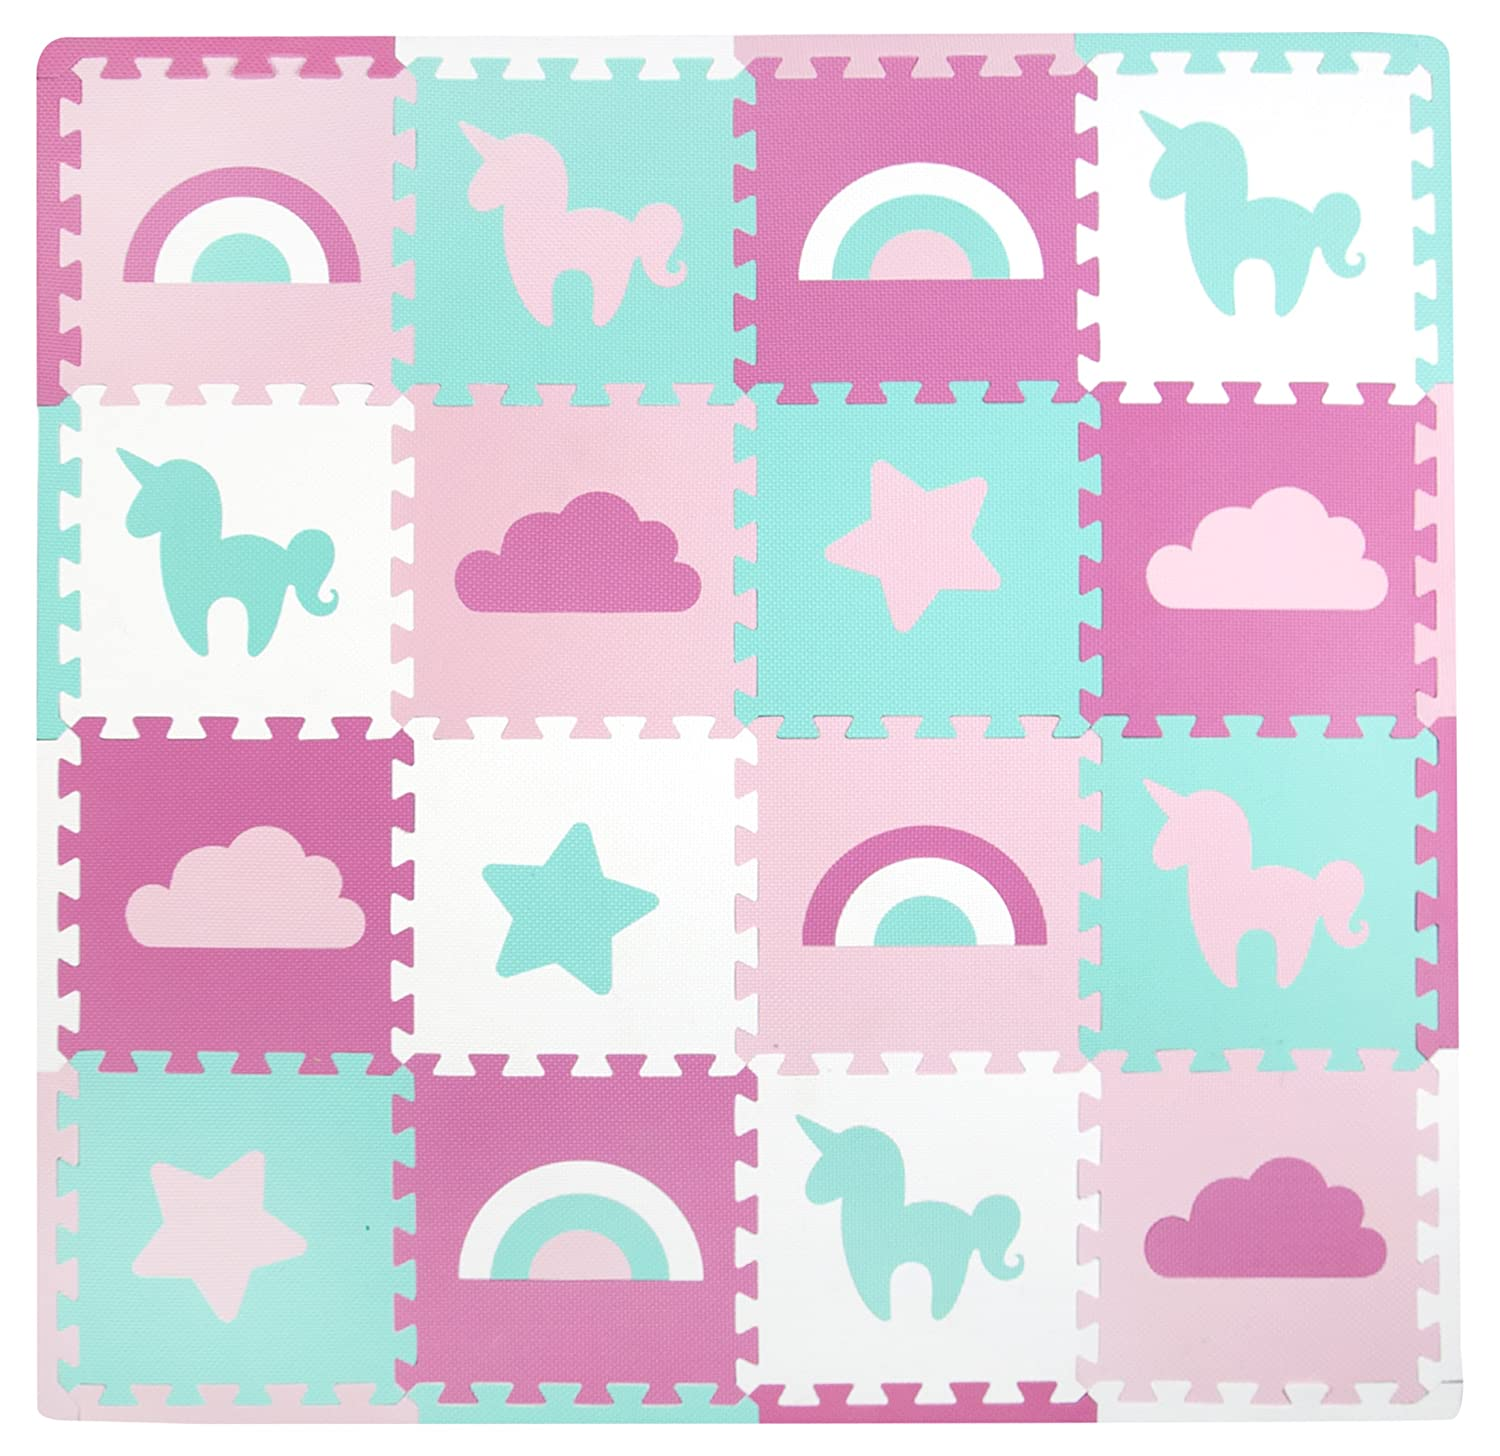 Tadpoles Soft EVA Foam 16pc Playmat Set, Unicorns and Rainbows, Pink, 50